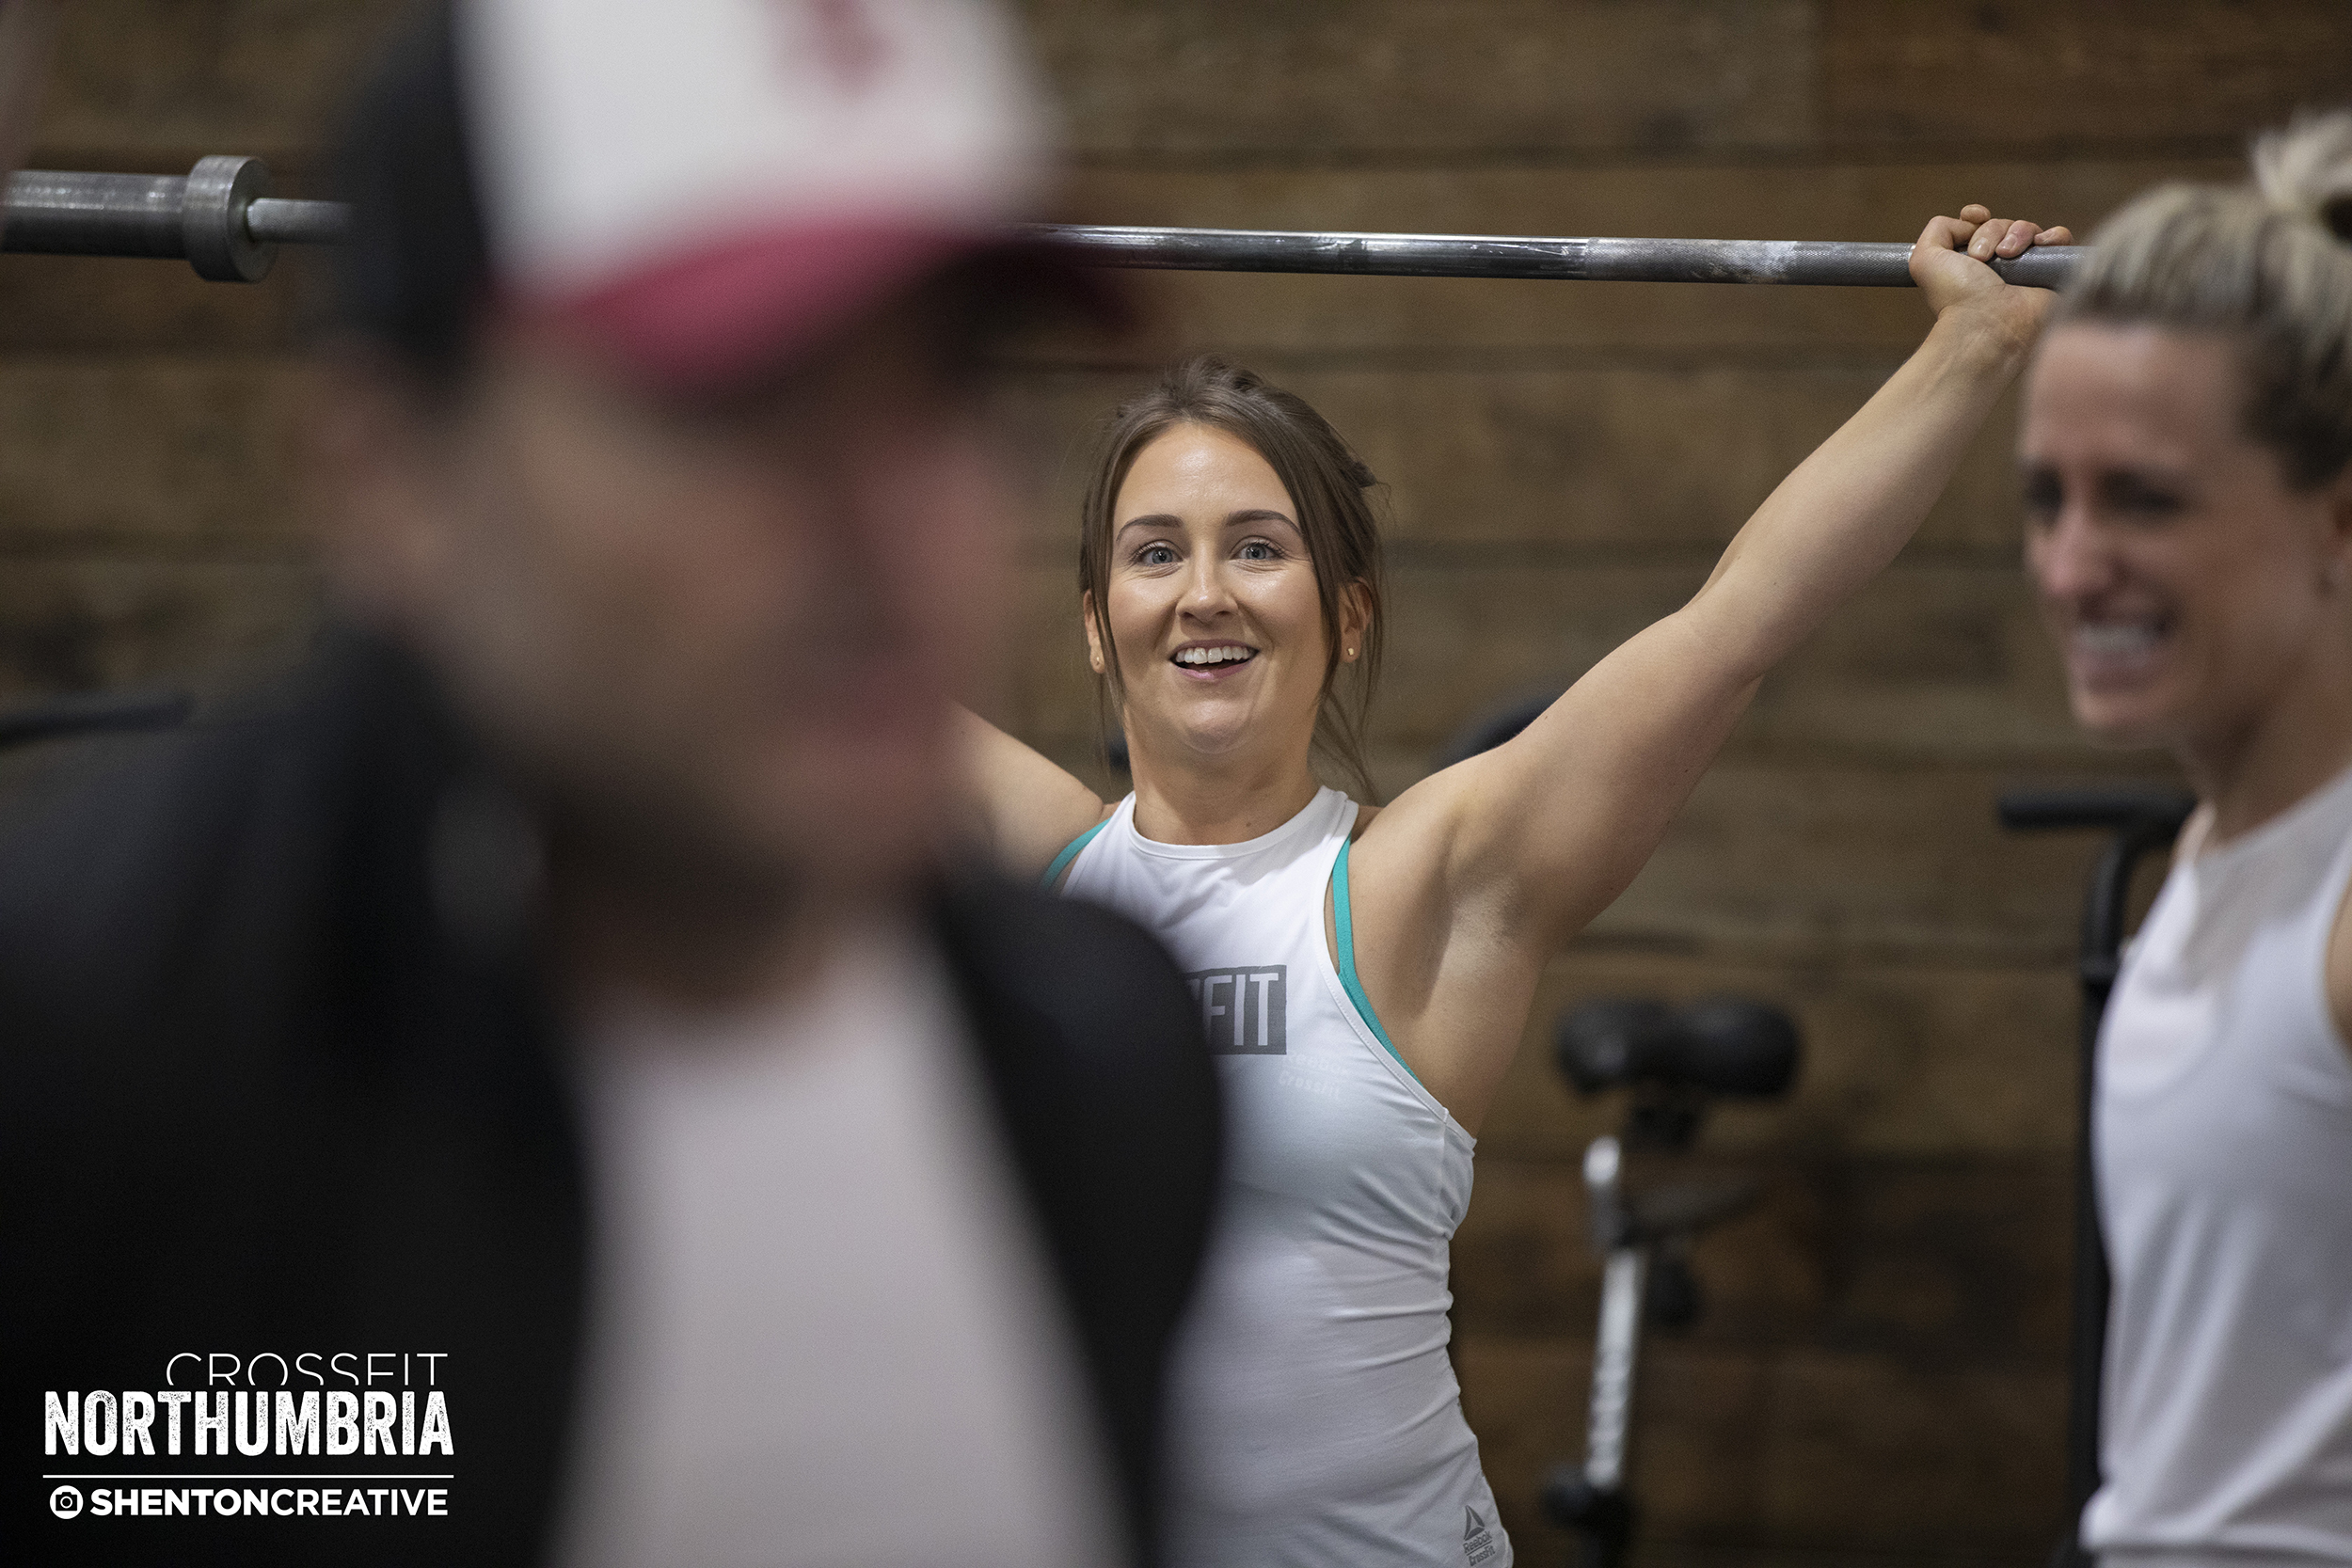 Laura Kay - 3+ year member, warming up for event 2 of the CFN Lift Off